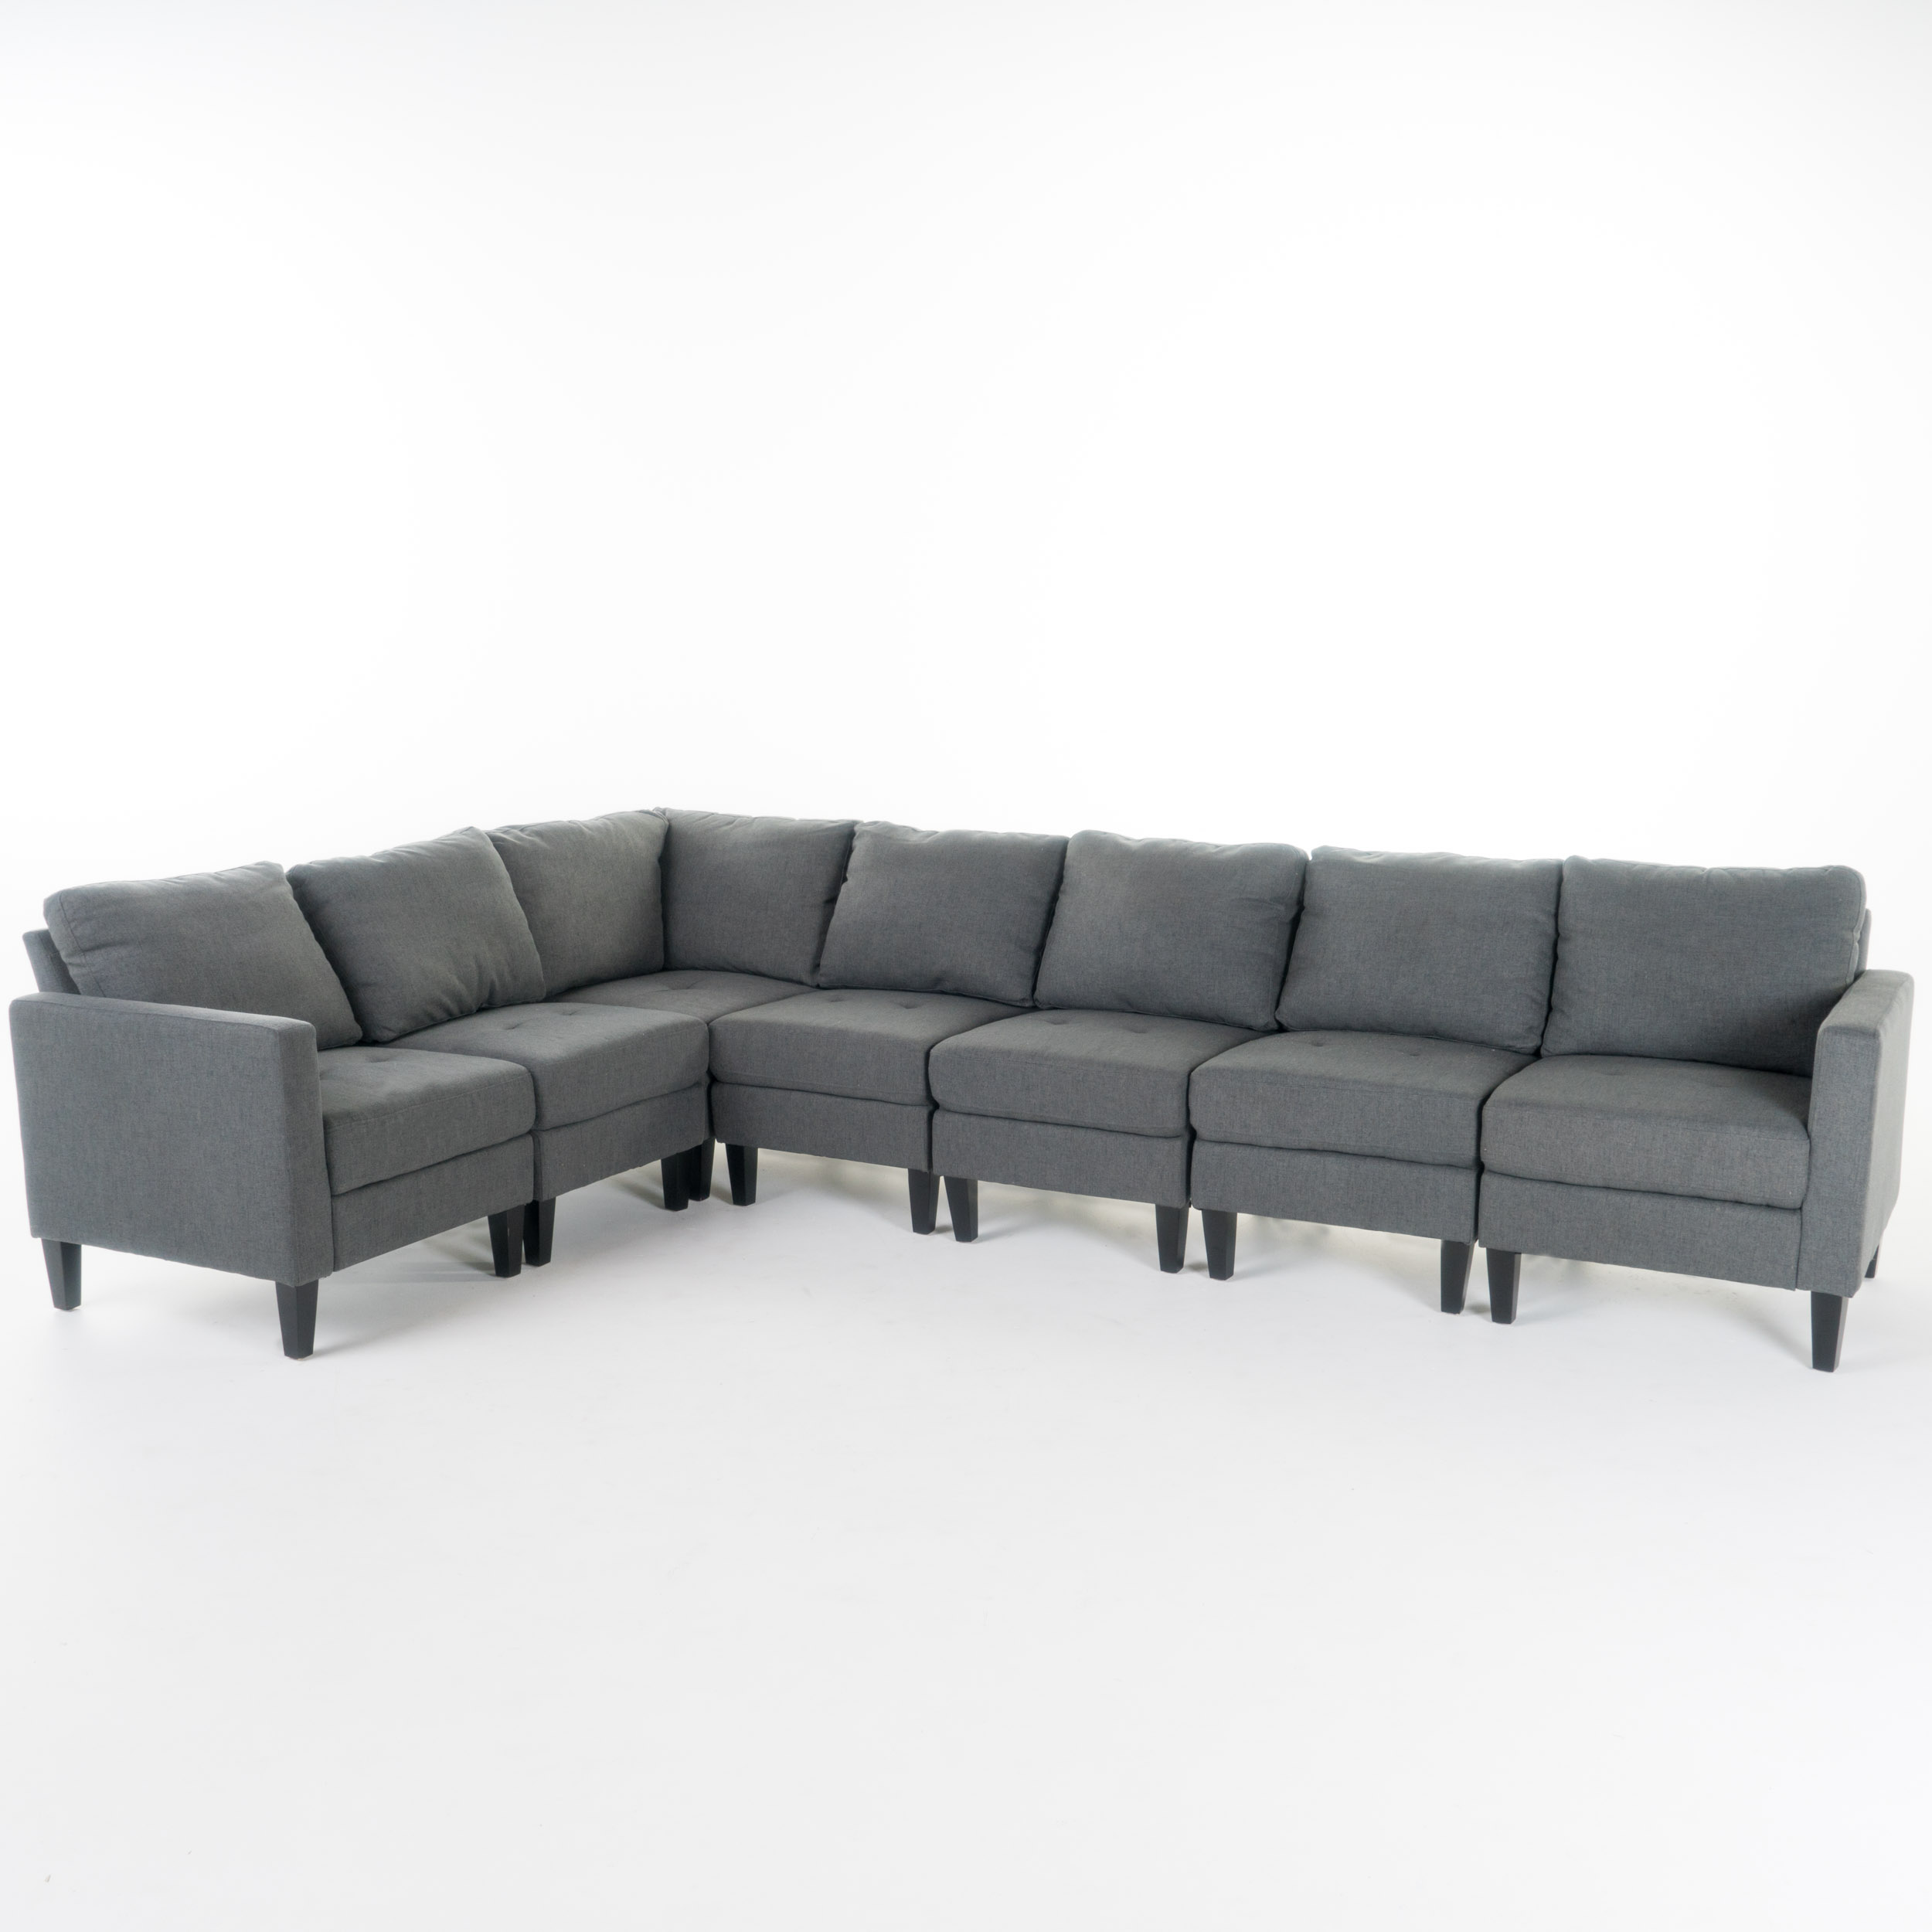 Brilliant Carolina Contemporary 7 Piece Fabric Sectional Sofa With Bralicious Painted Fabric Chair Ideas Braliciousco